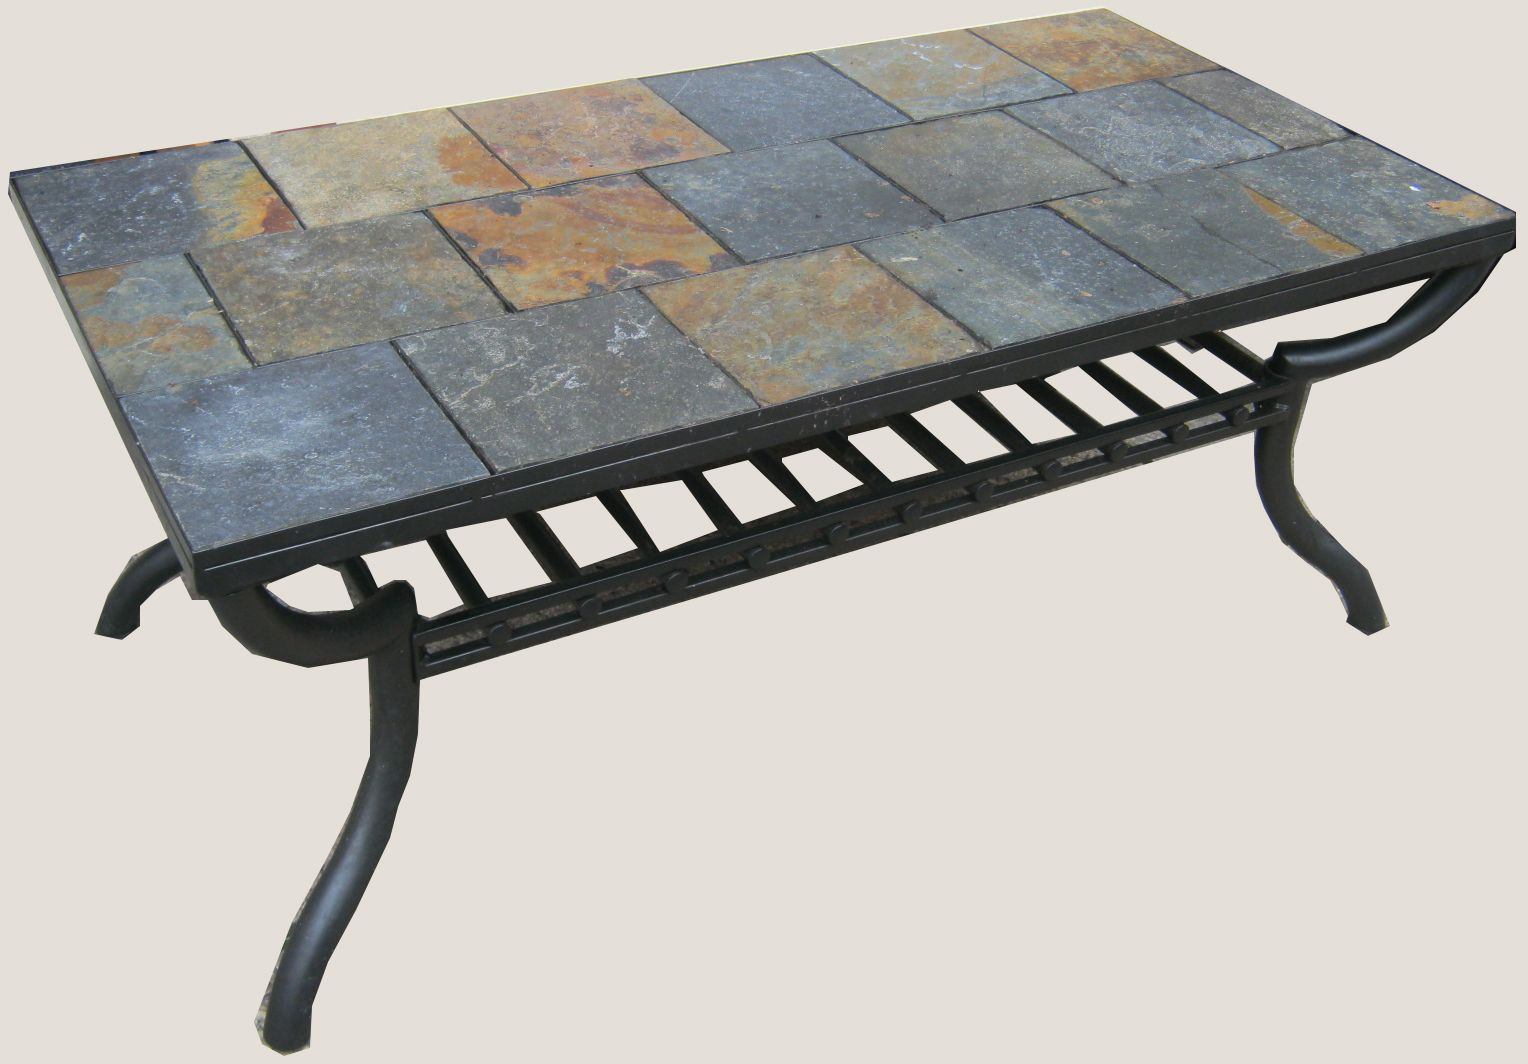 Uhuru Furniture Collectibles Slate Tile Coffee Table Sold